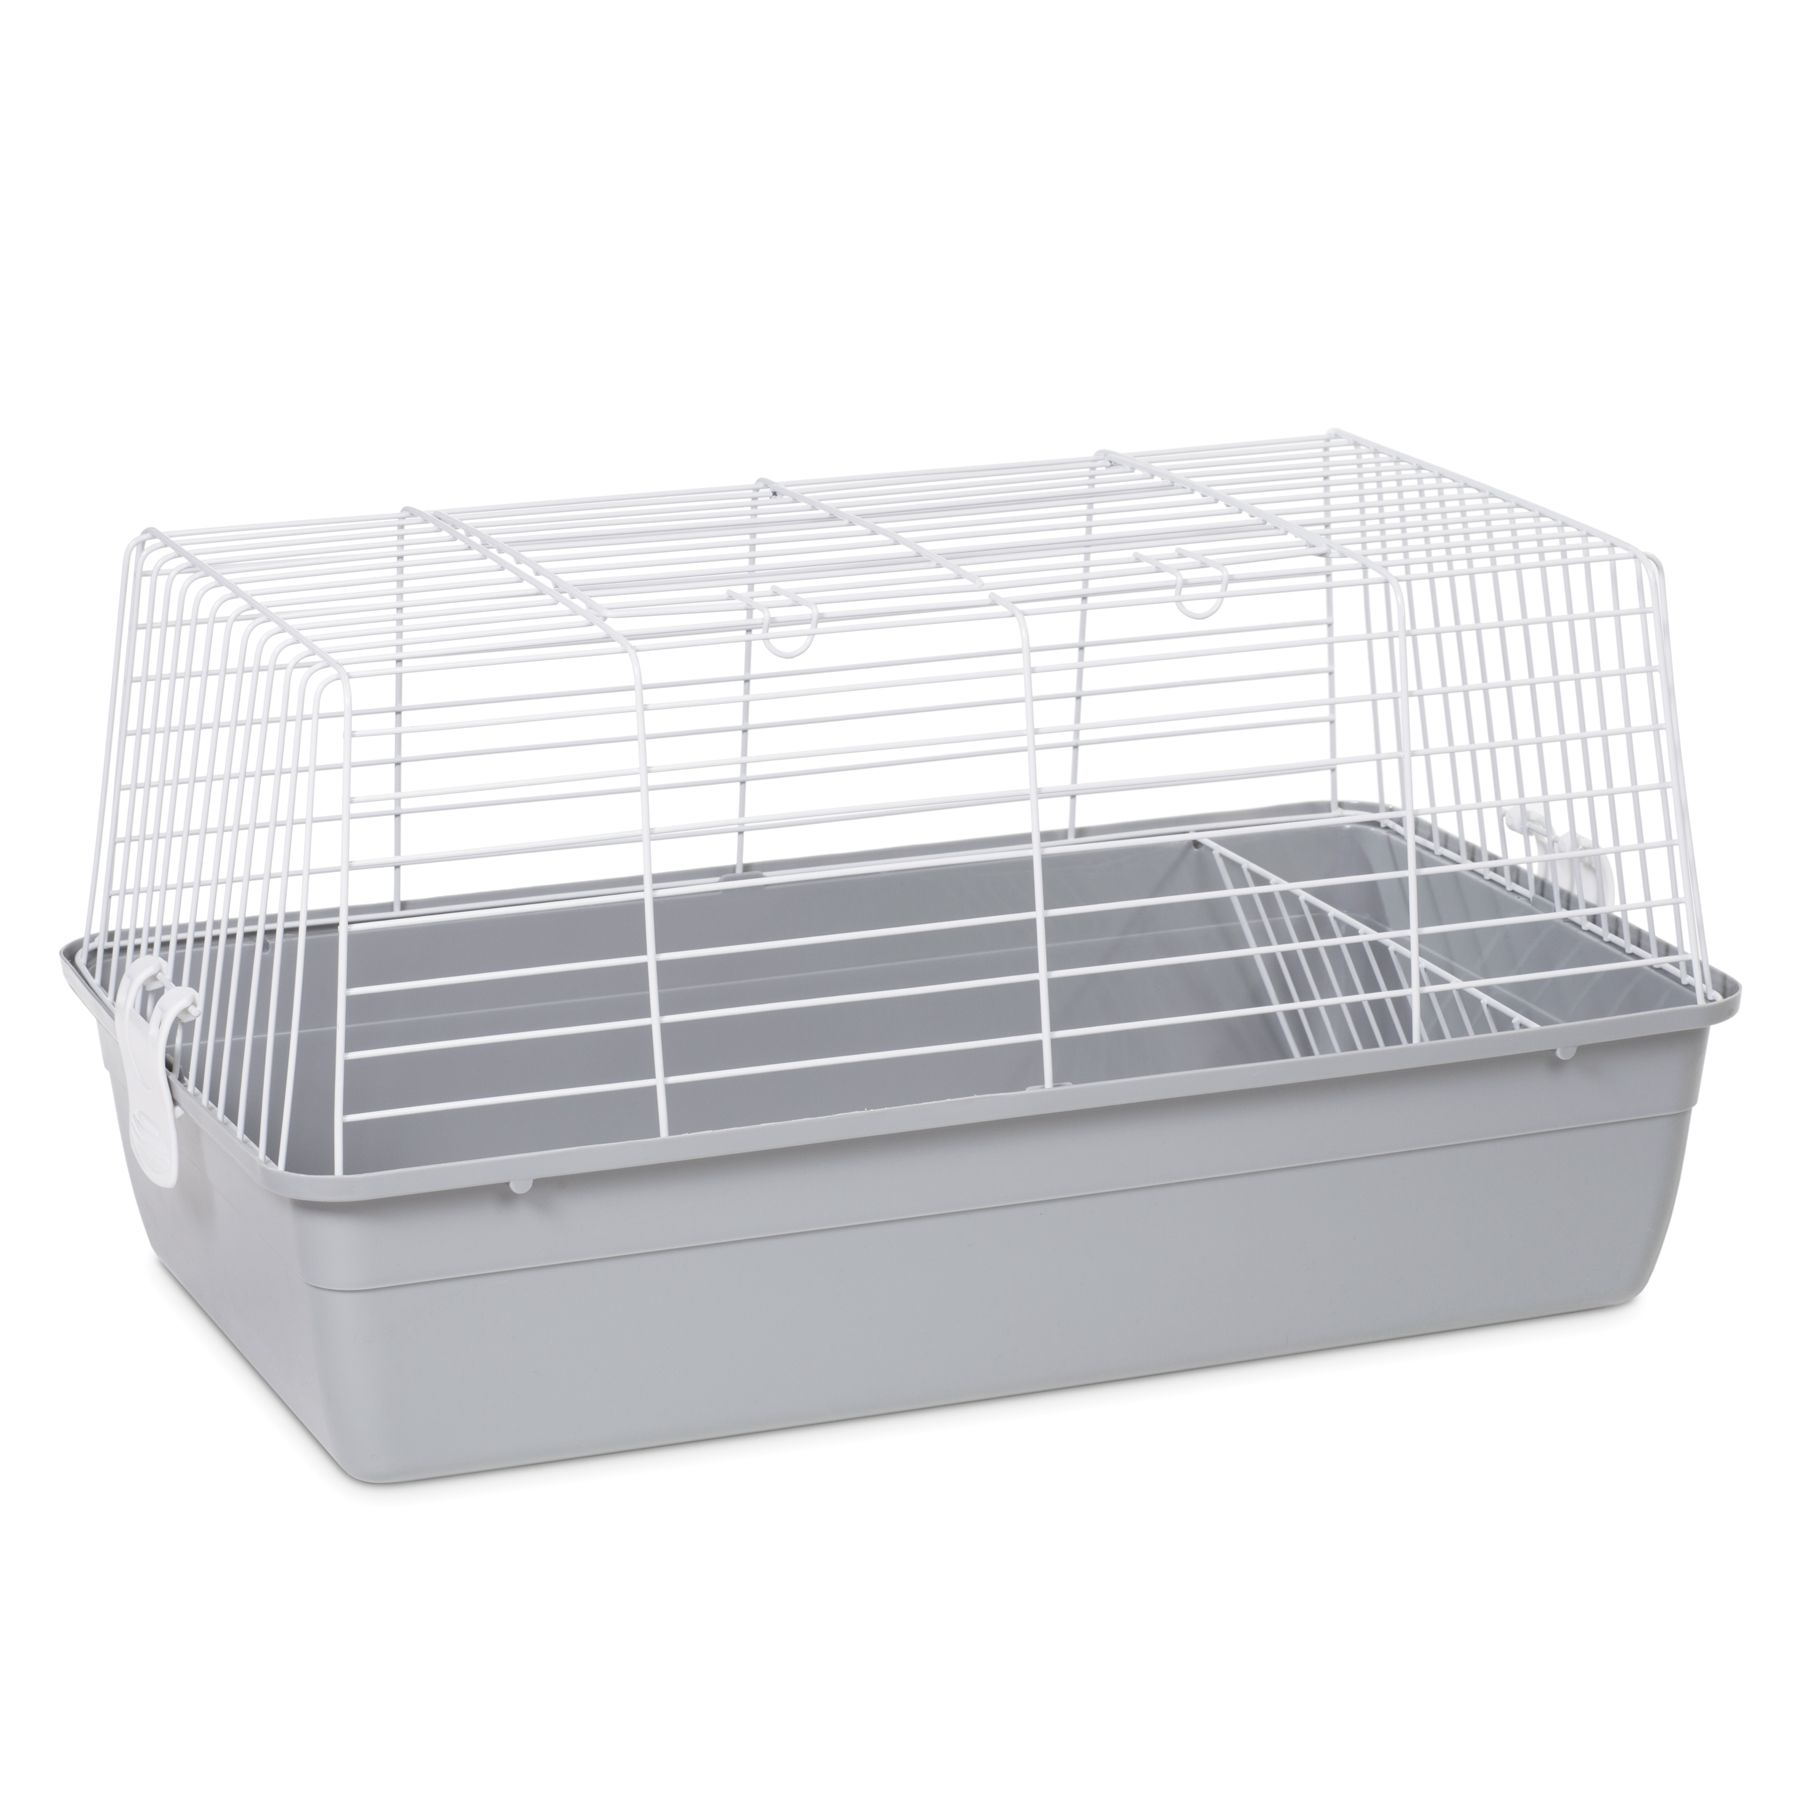 Pet Prevue Products Carina Small Animal Cage size: Small, Prevue Pet Products 5250002